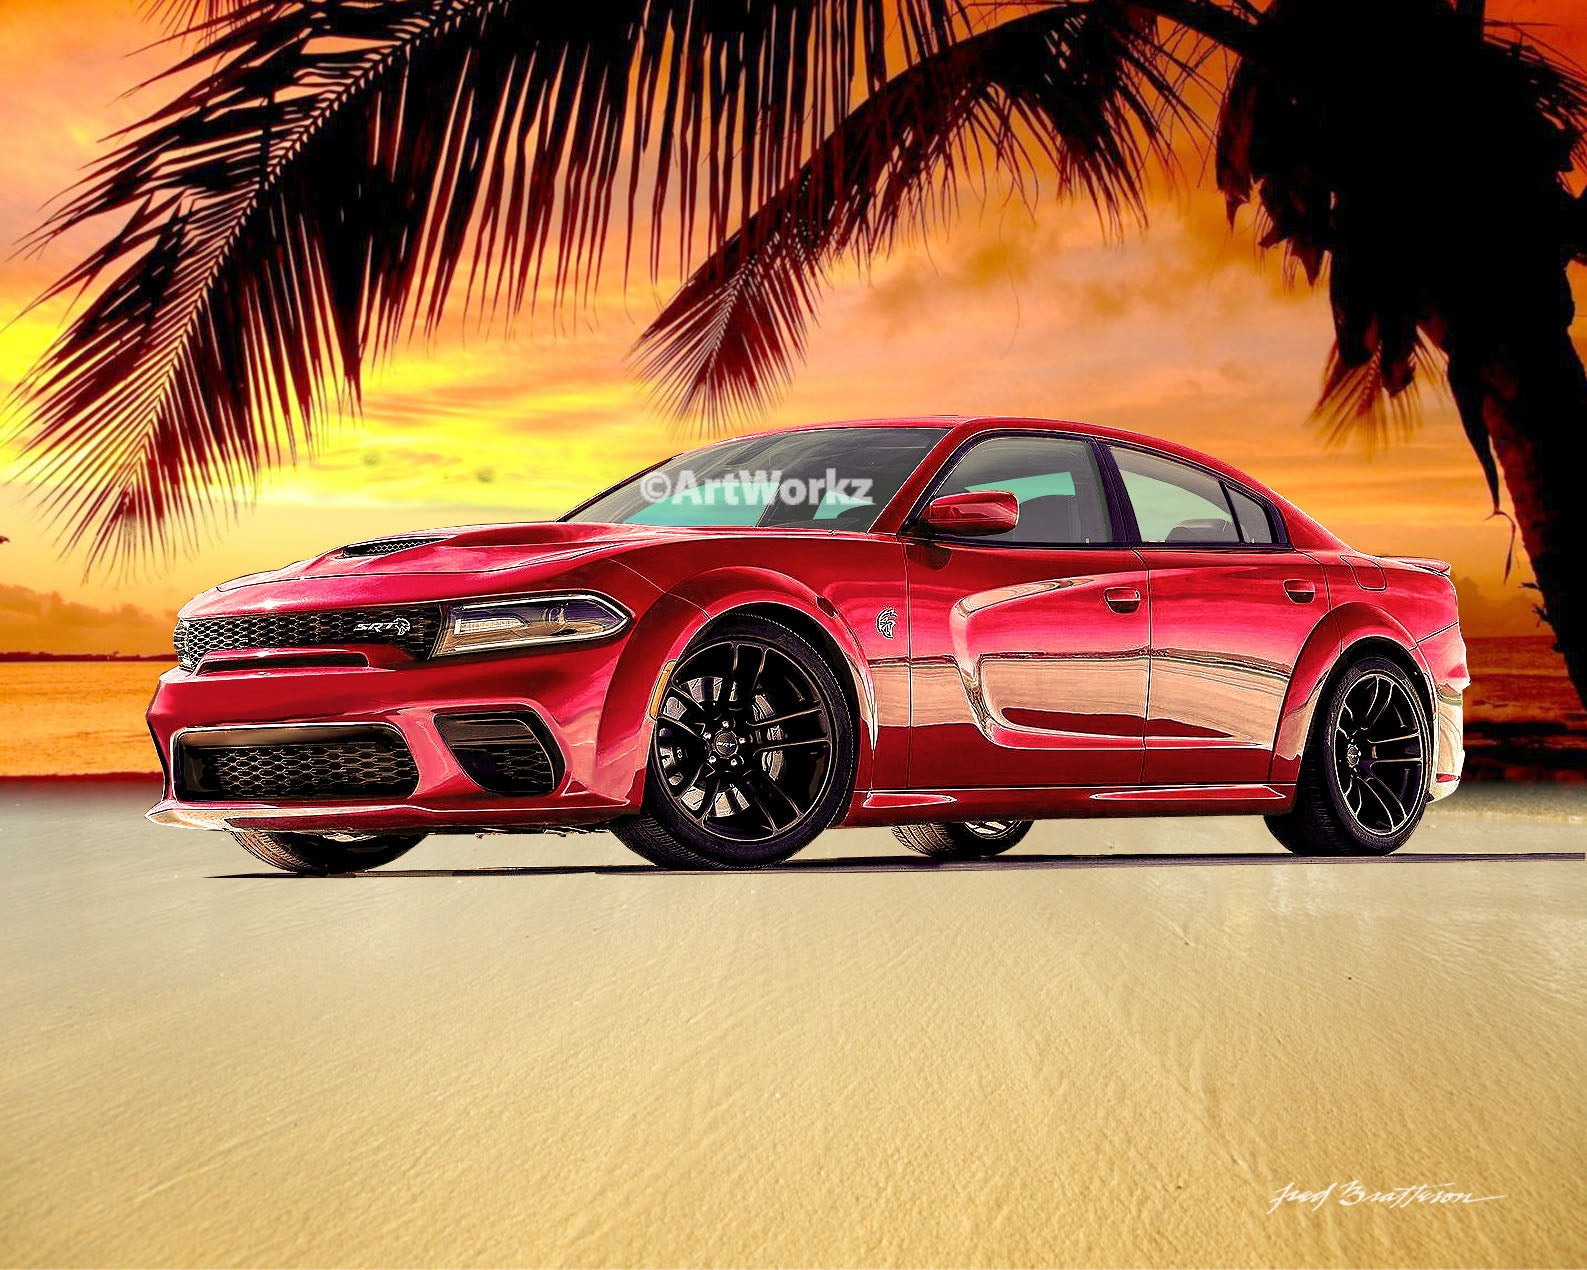 Dodge Charger Hellcat, 2020 Wide Body, Auto Art, Hot Rod Art, AW117